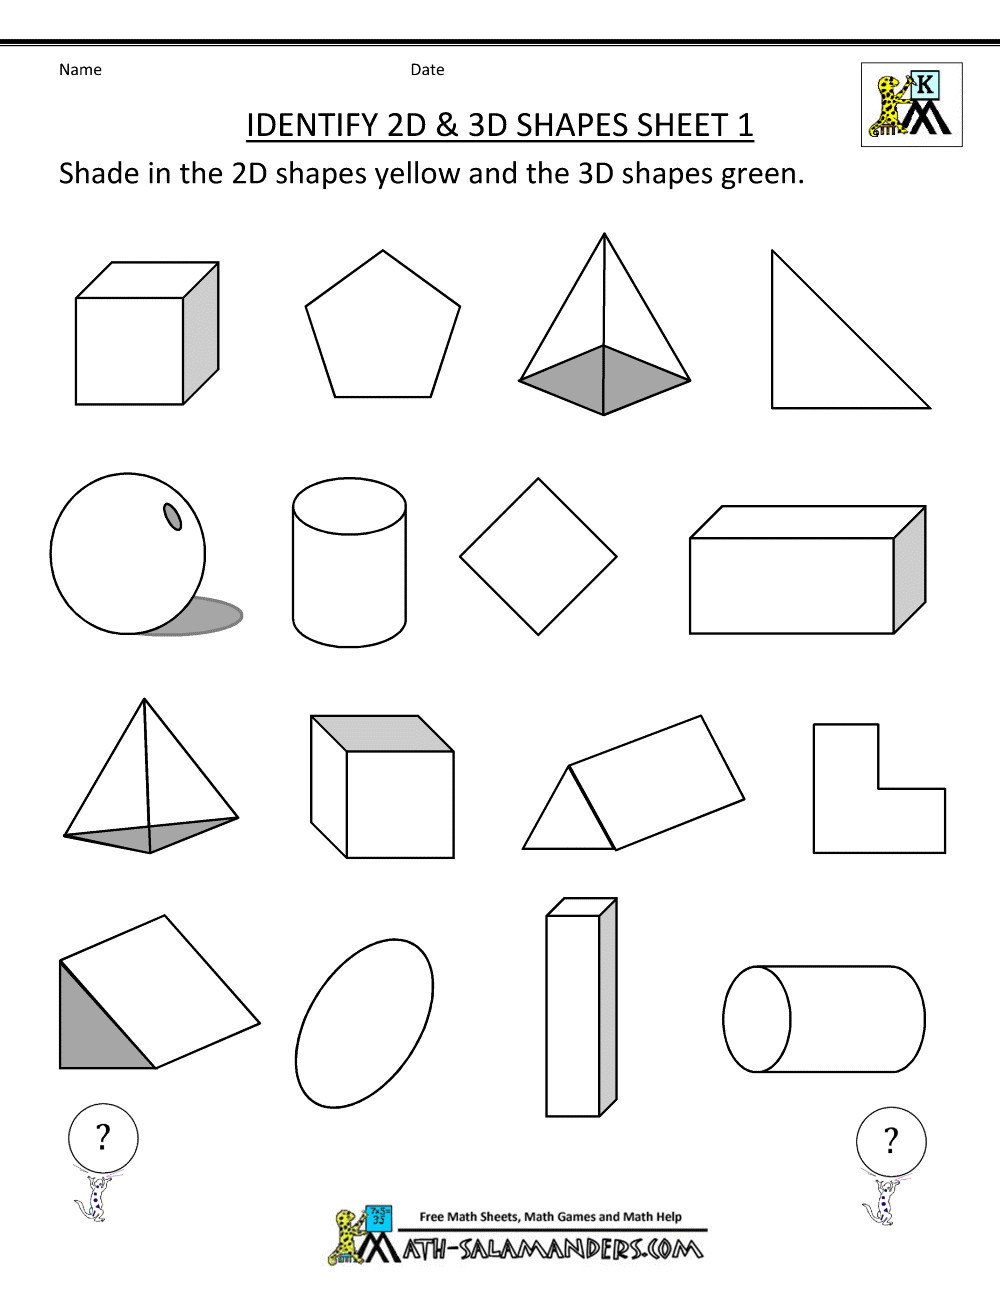 Sorting Shapes Worksheets First Grade 5 Free Math Worksheets First Grade 1 Geometry Draw 2d Shapes